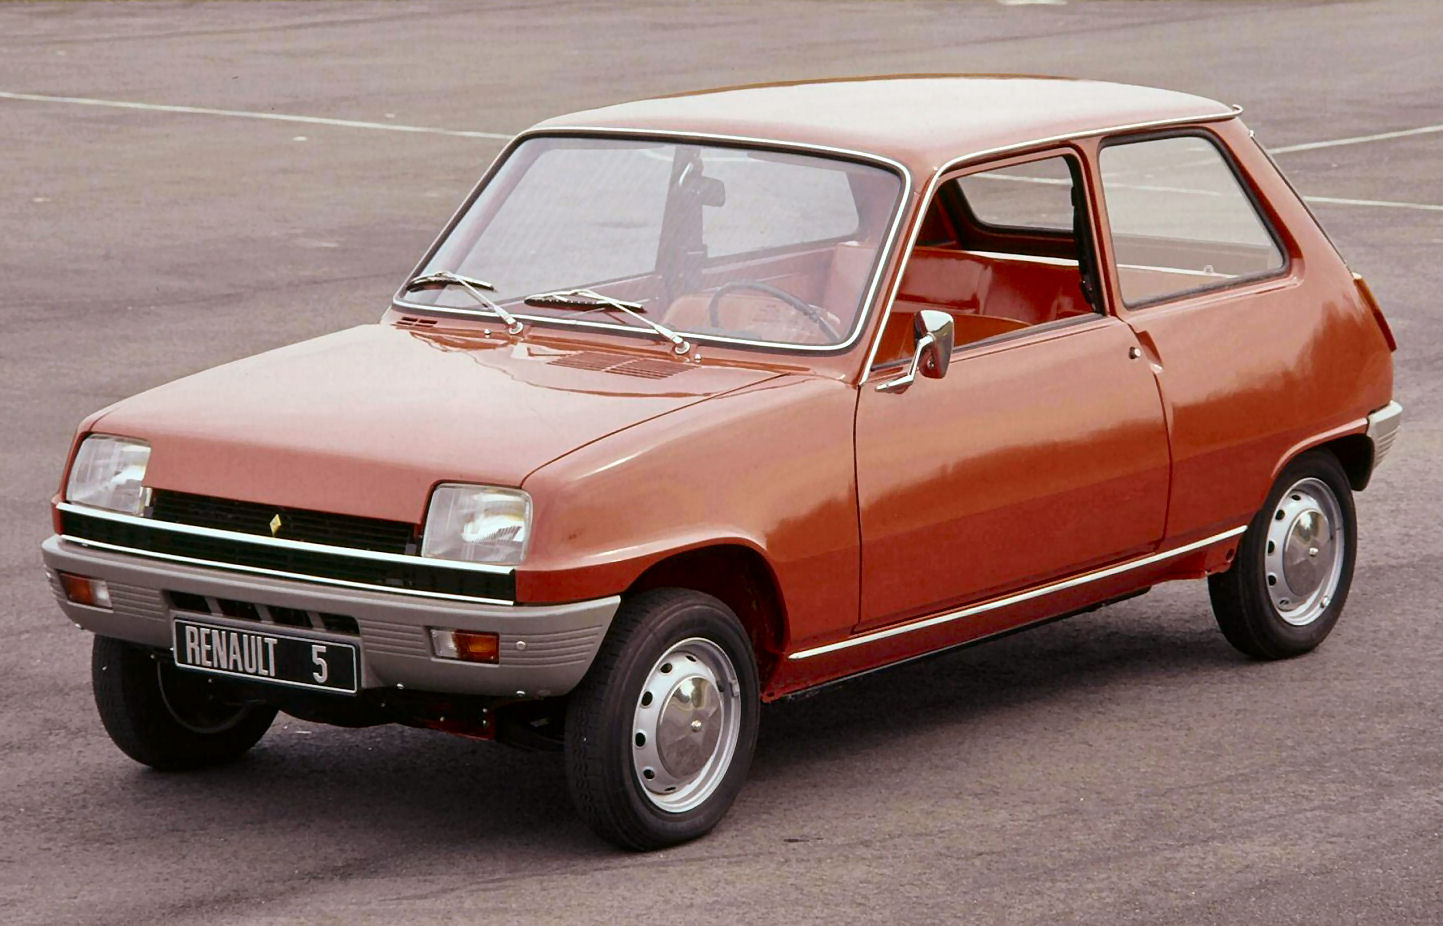 rouge avg renault r5 TL-1971 r4